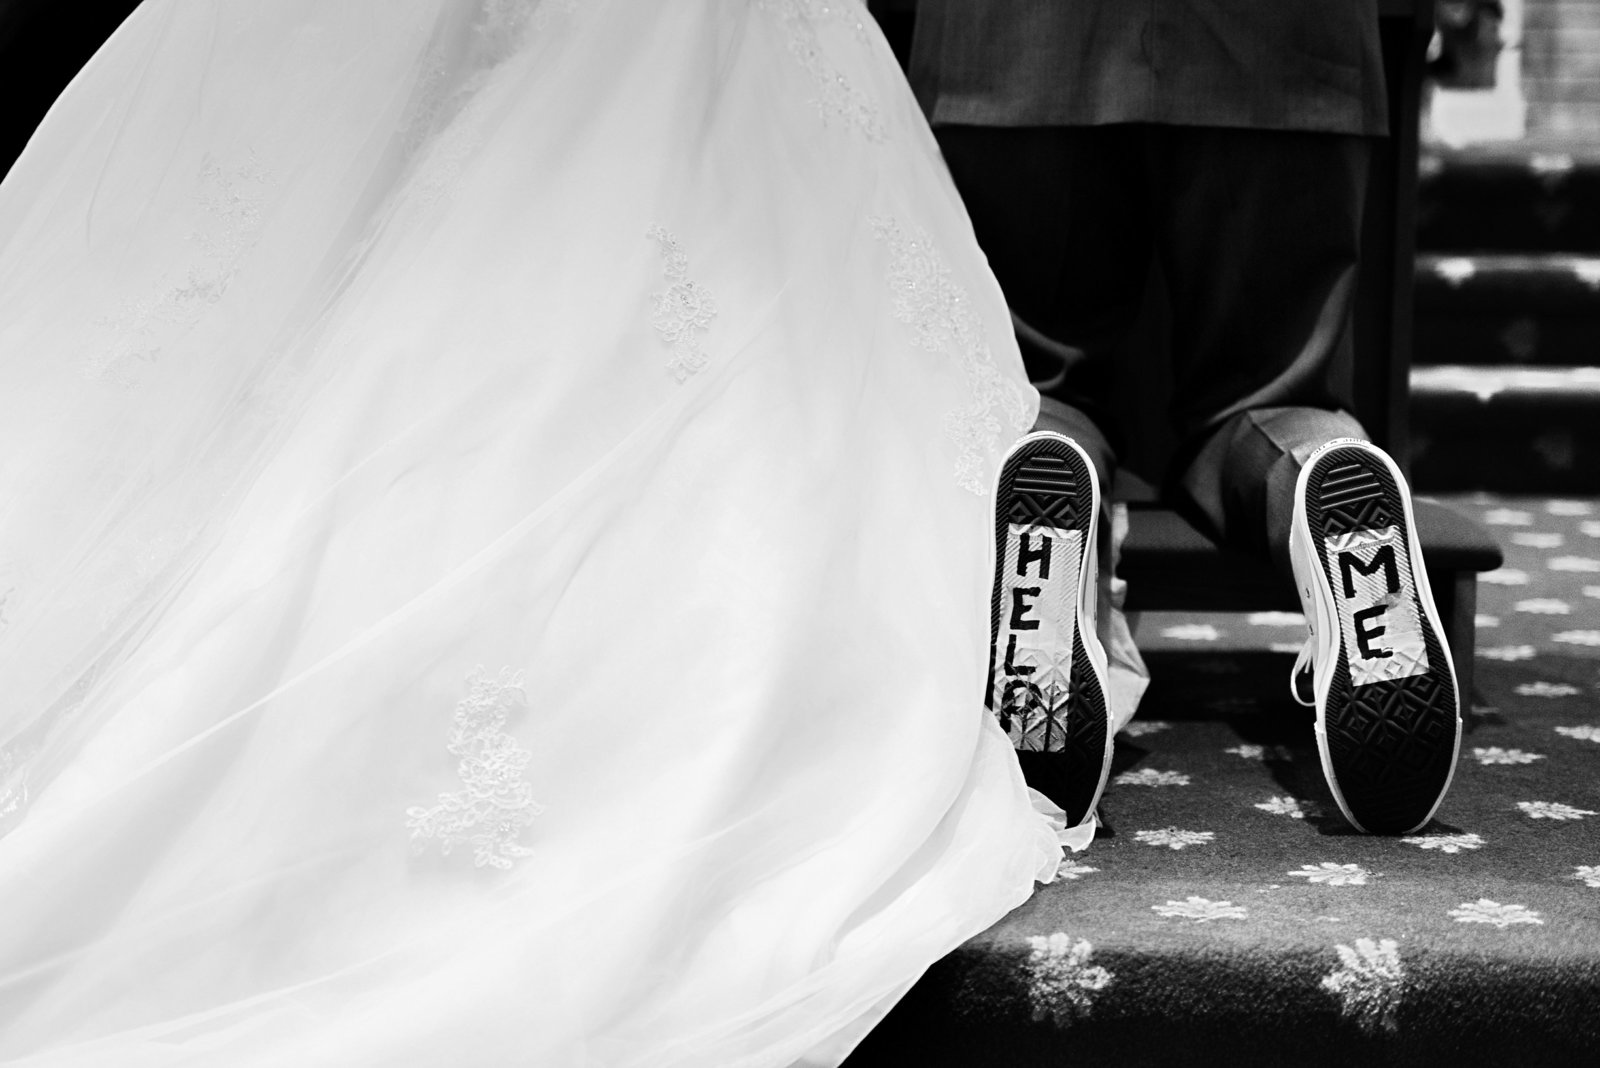 Brittany&Ethan_Flanders_Wedding_Teaser-22 copy